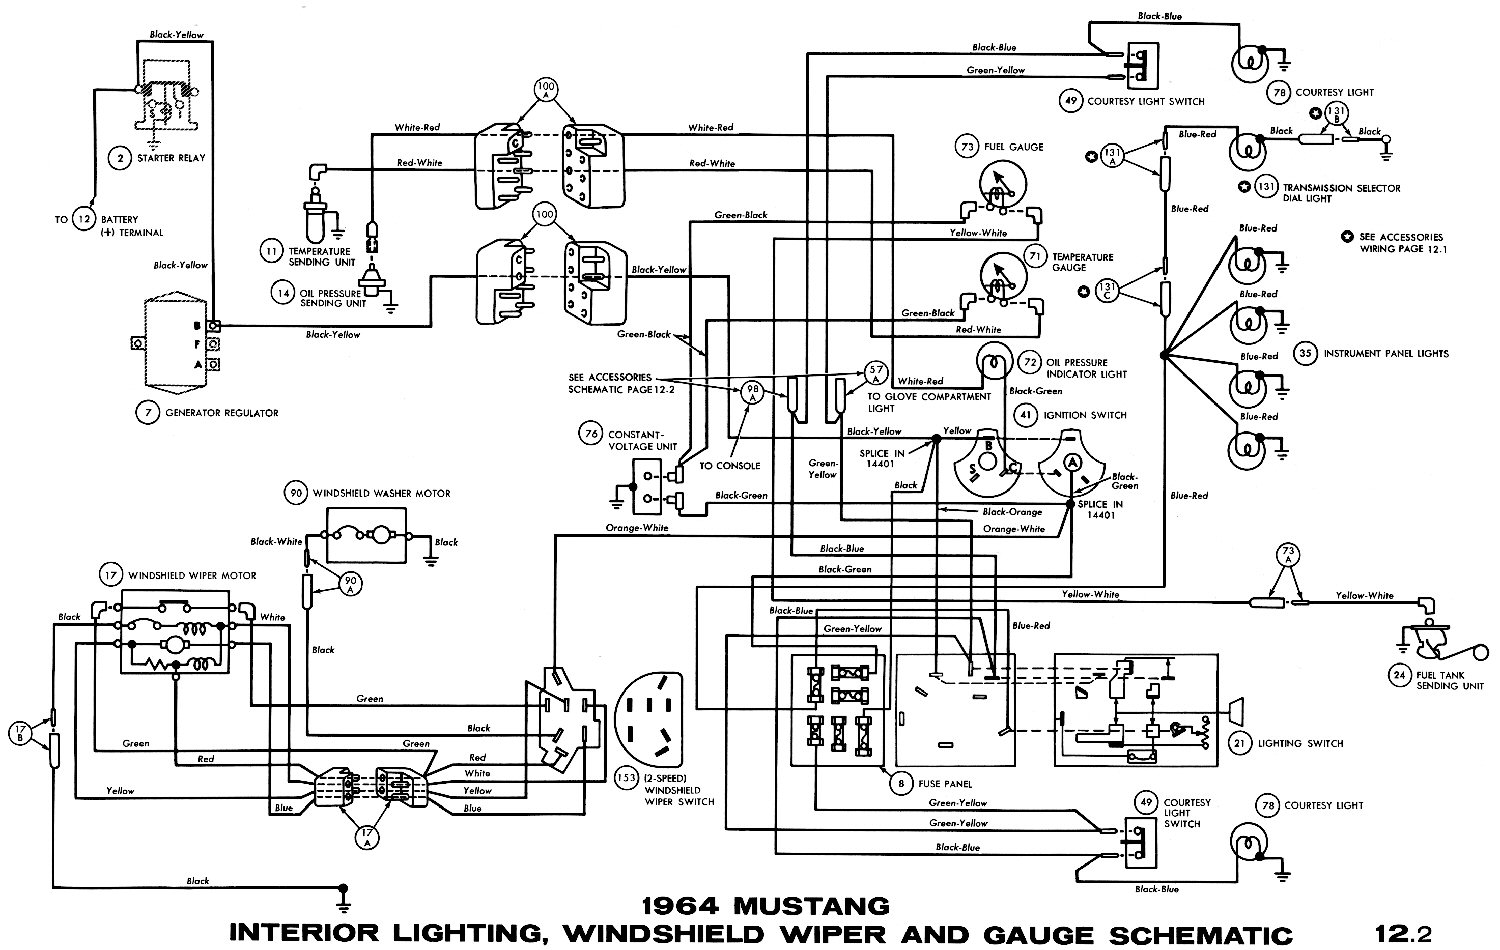 1964k 1964 mustang wiring diagrams average joe restoration 1970 mustang wiring diagram at soozxer.org